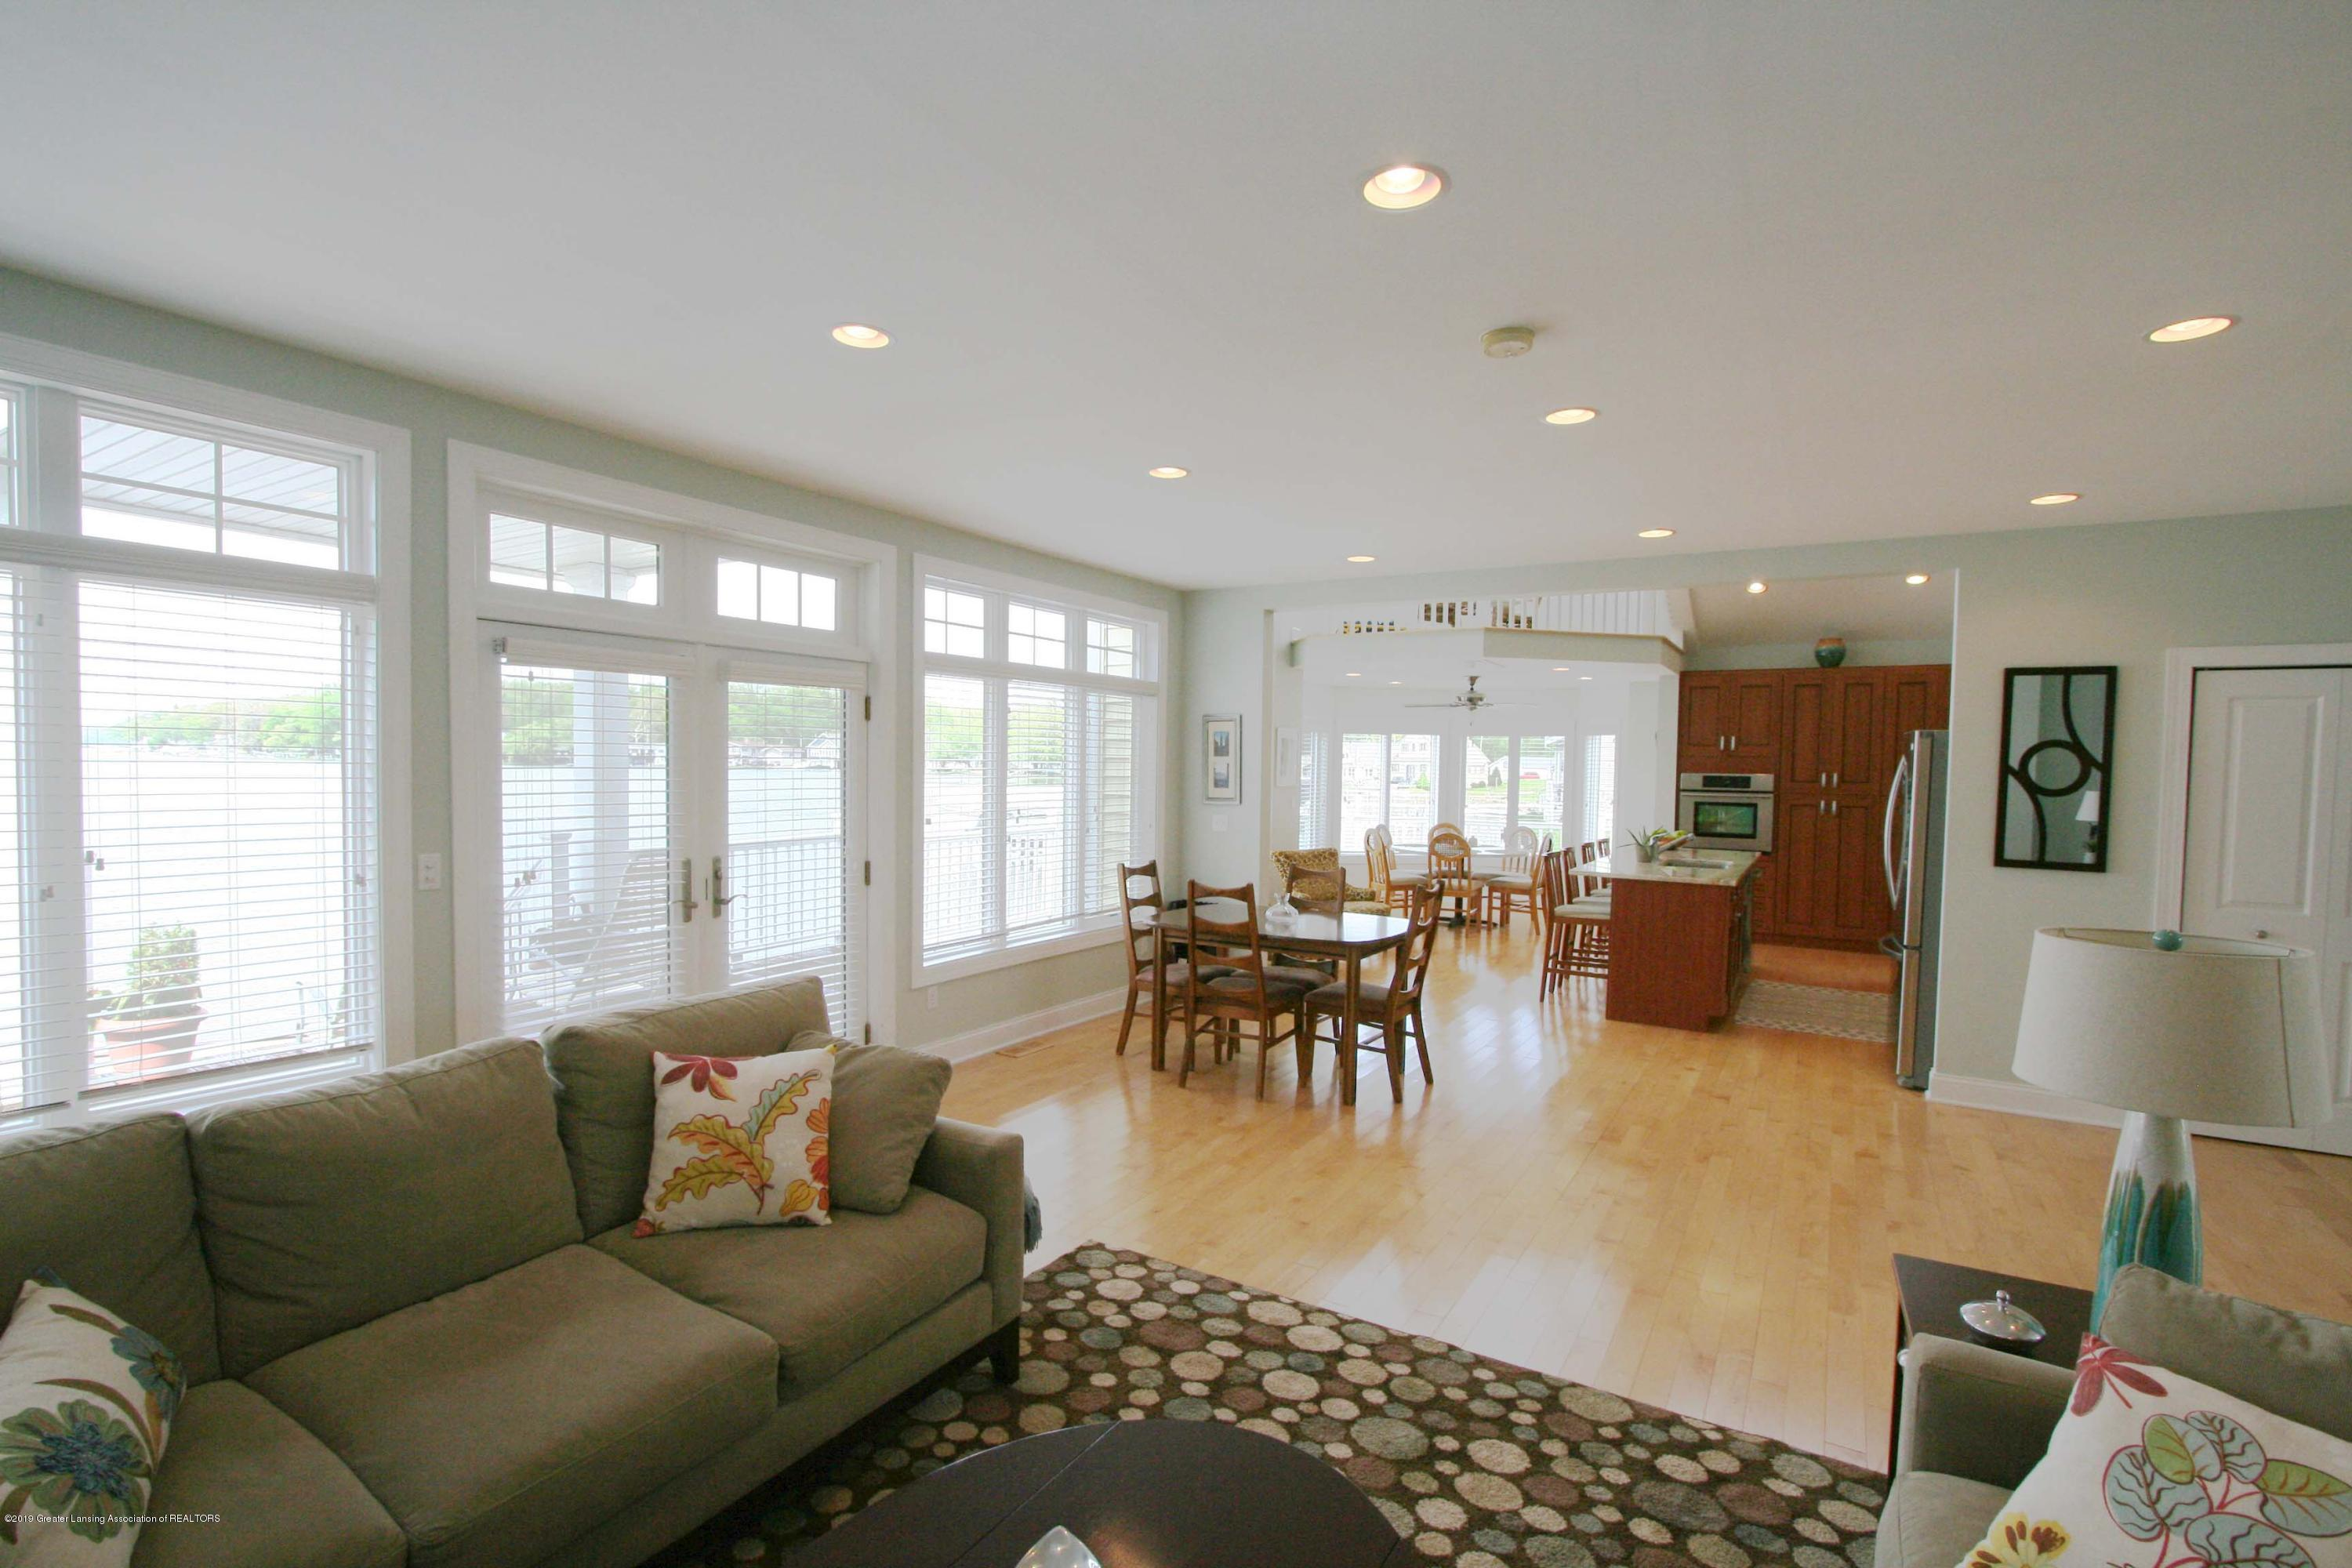 4271 Anderson Rd - 019 - 19